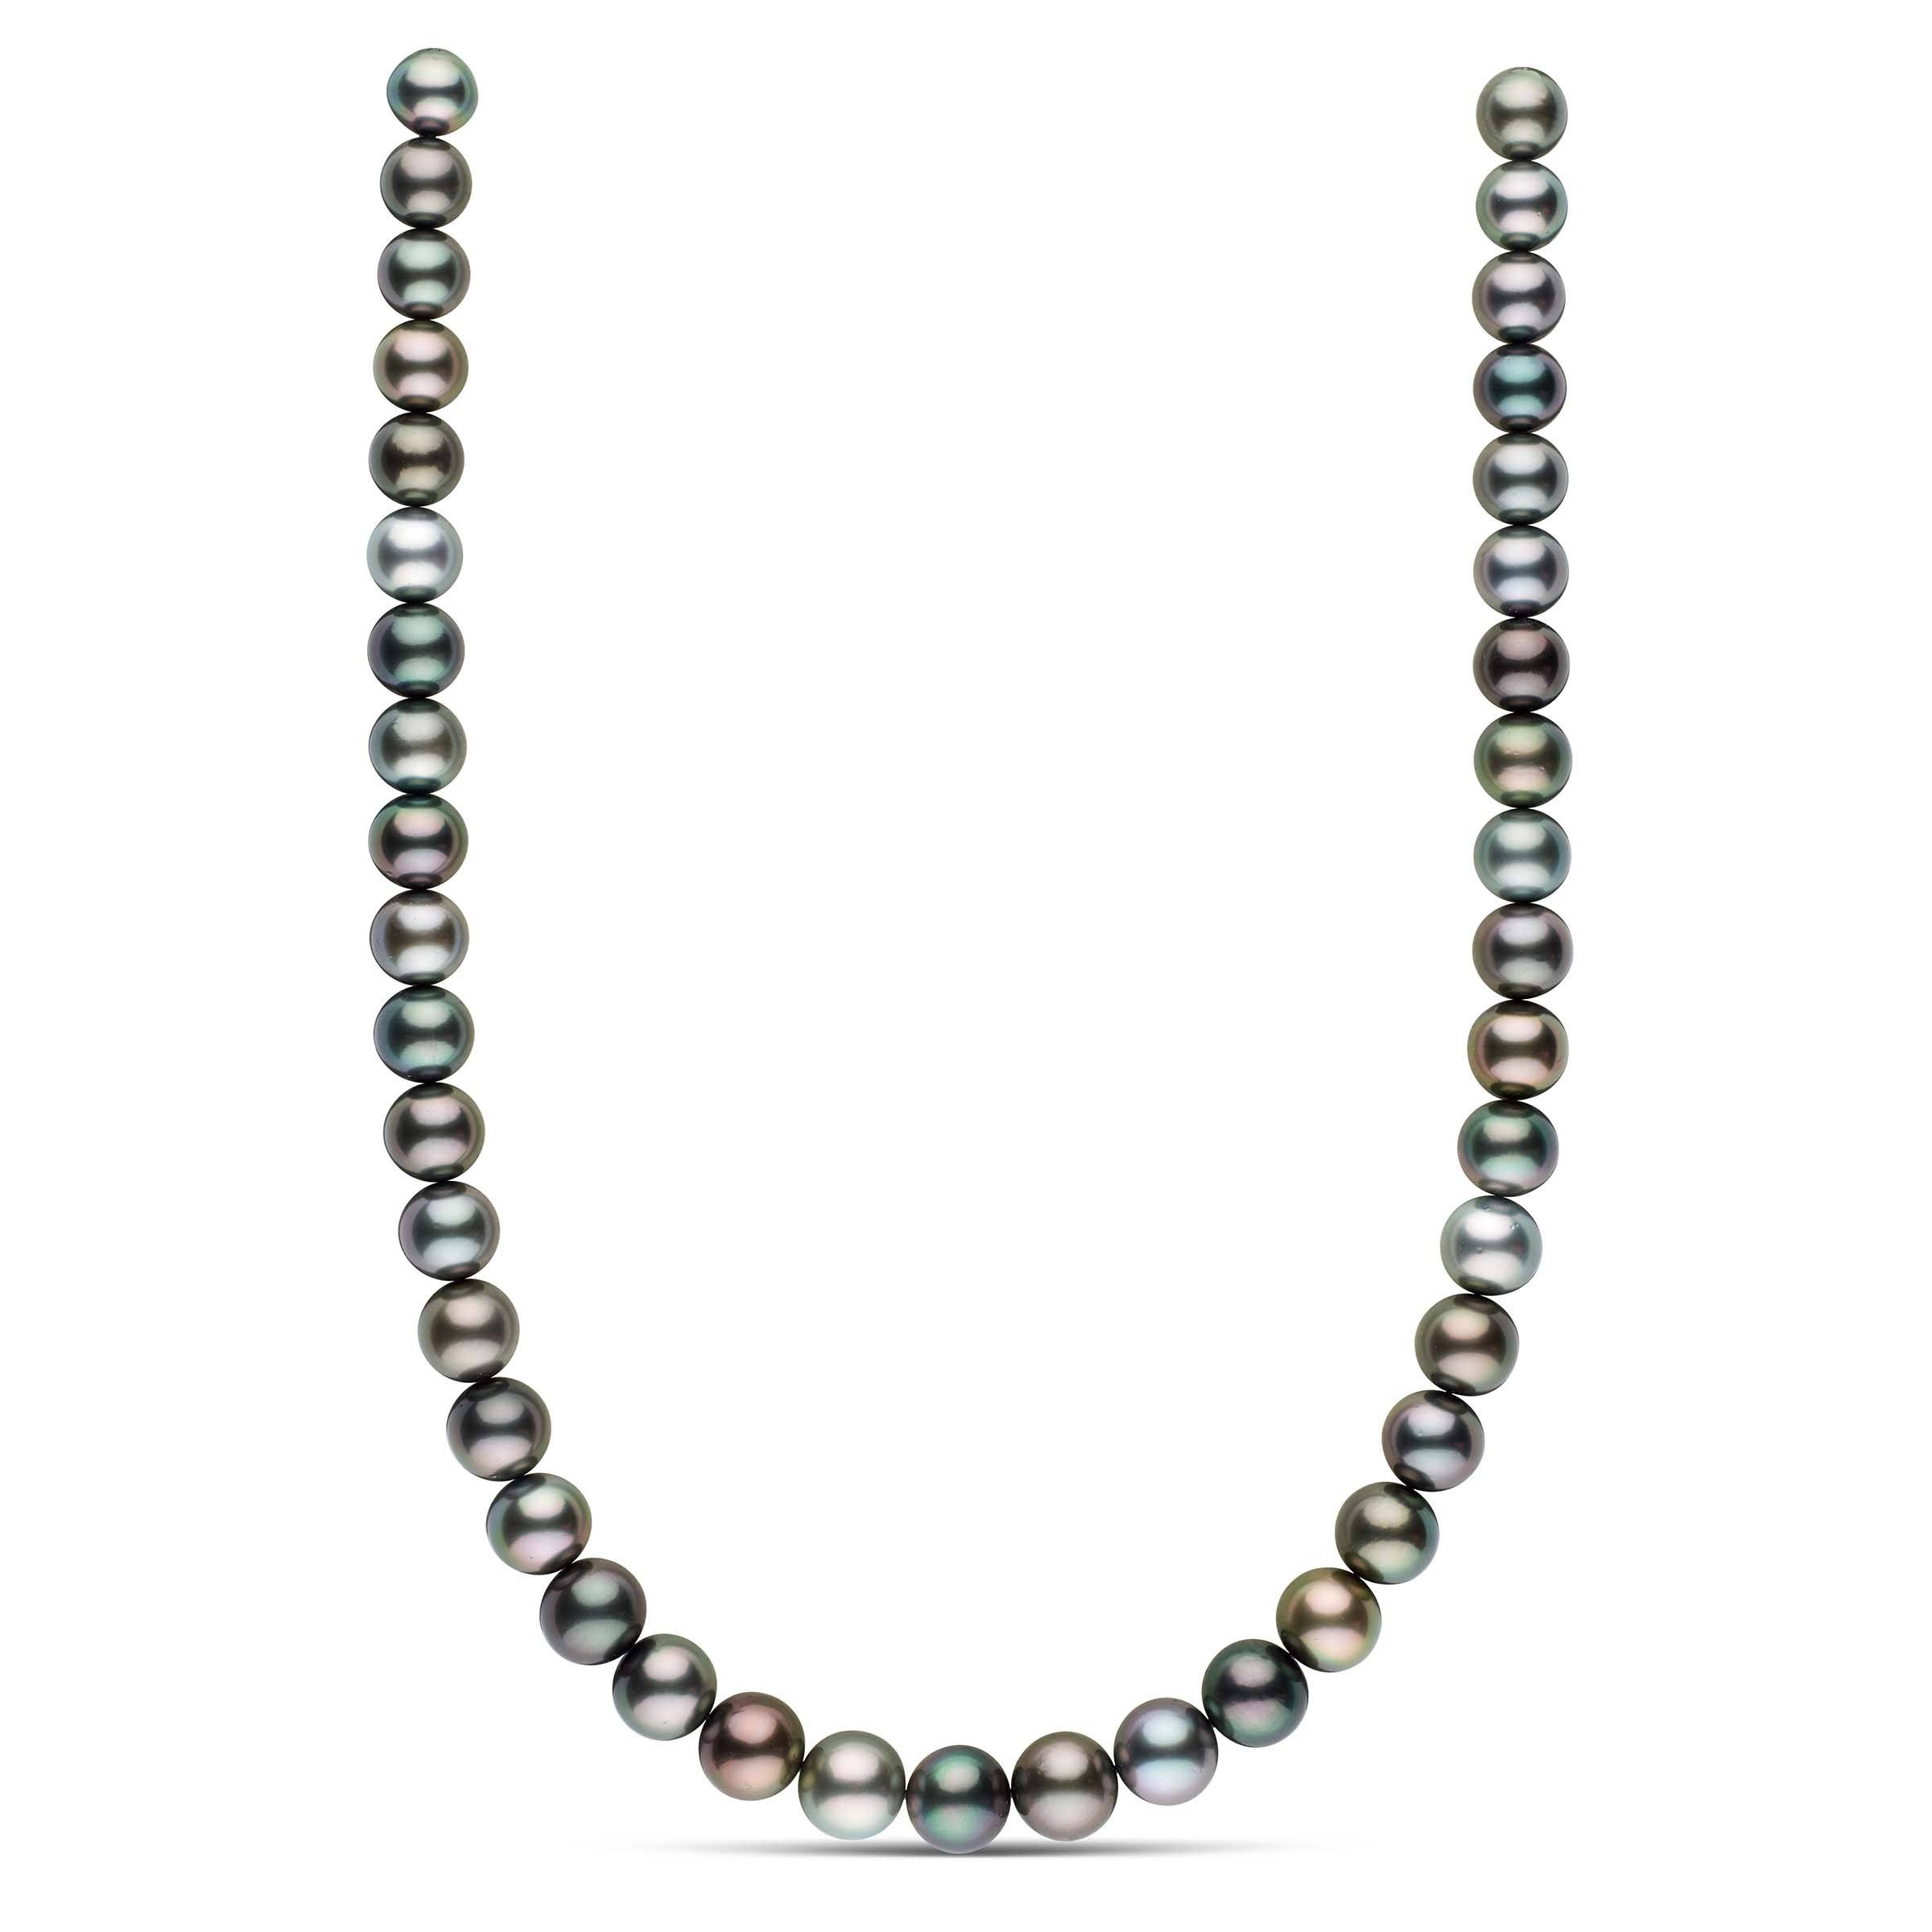 18-inch 10.0-11.7 mm AAA Round Tahitian Pearl Necklace